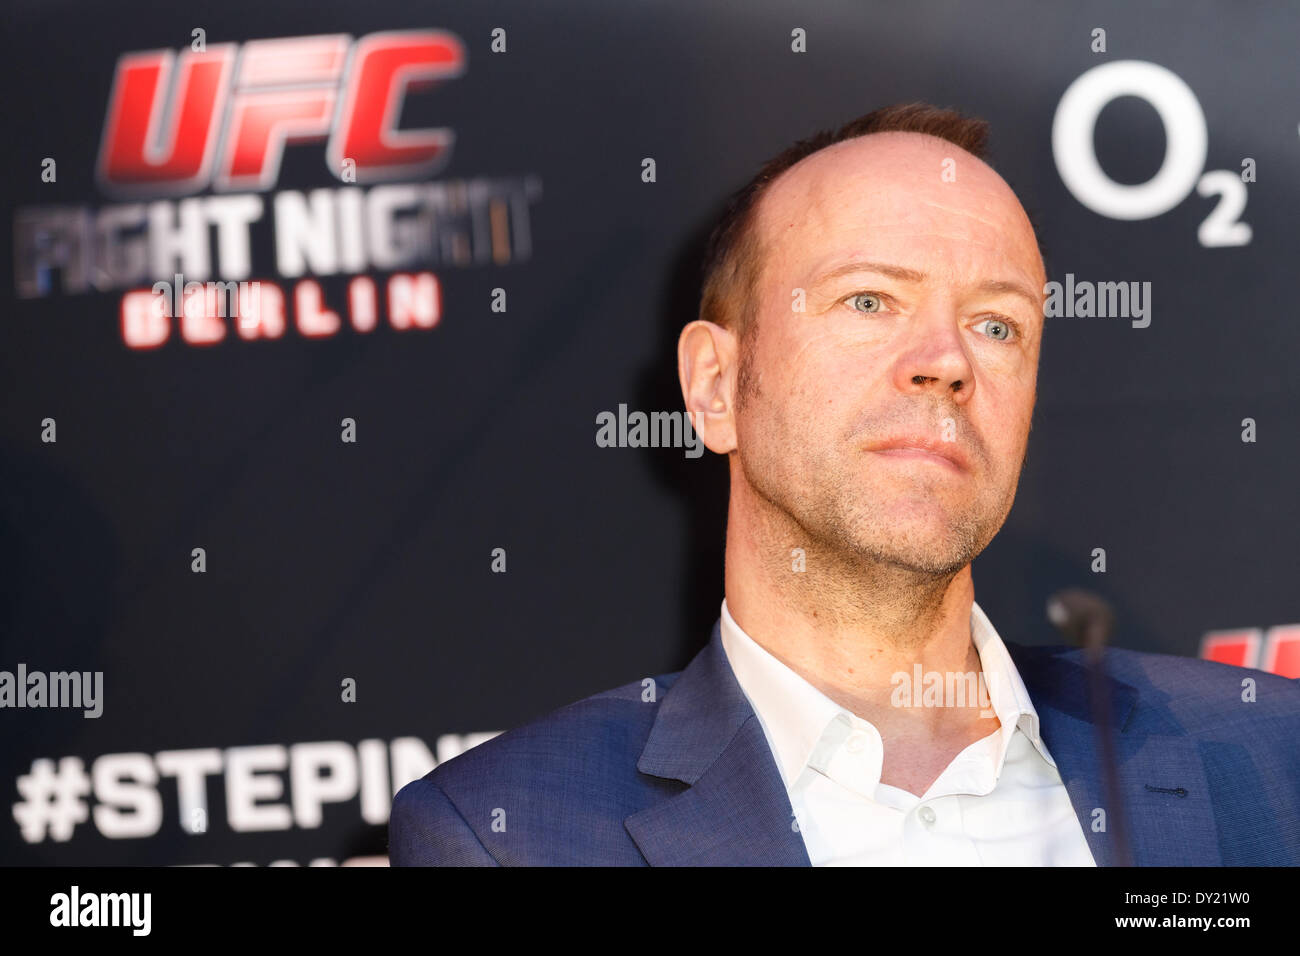 Berlin, Germany. April 03, 2014. FIGHT NIGHT BERLIN, UFC press conference and photo call with headline fighters - Stock Image